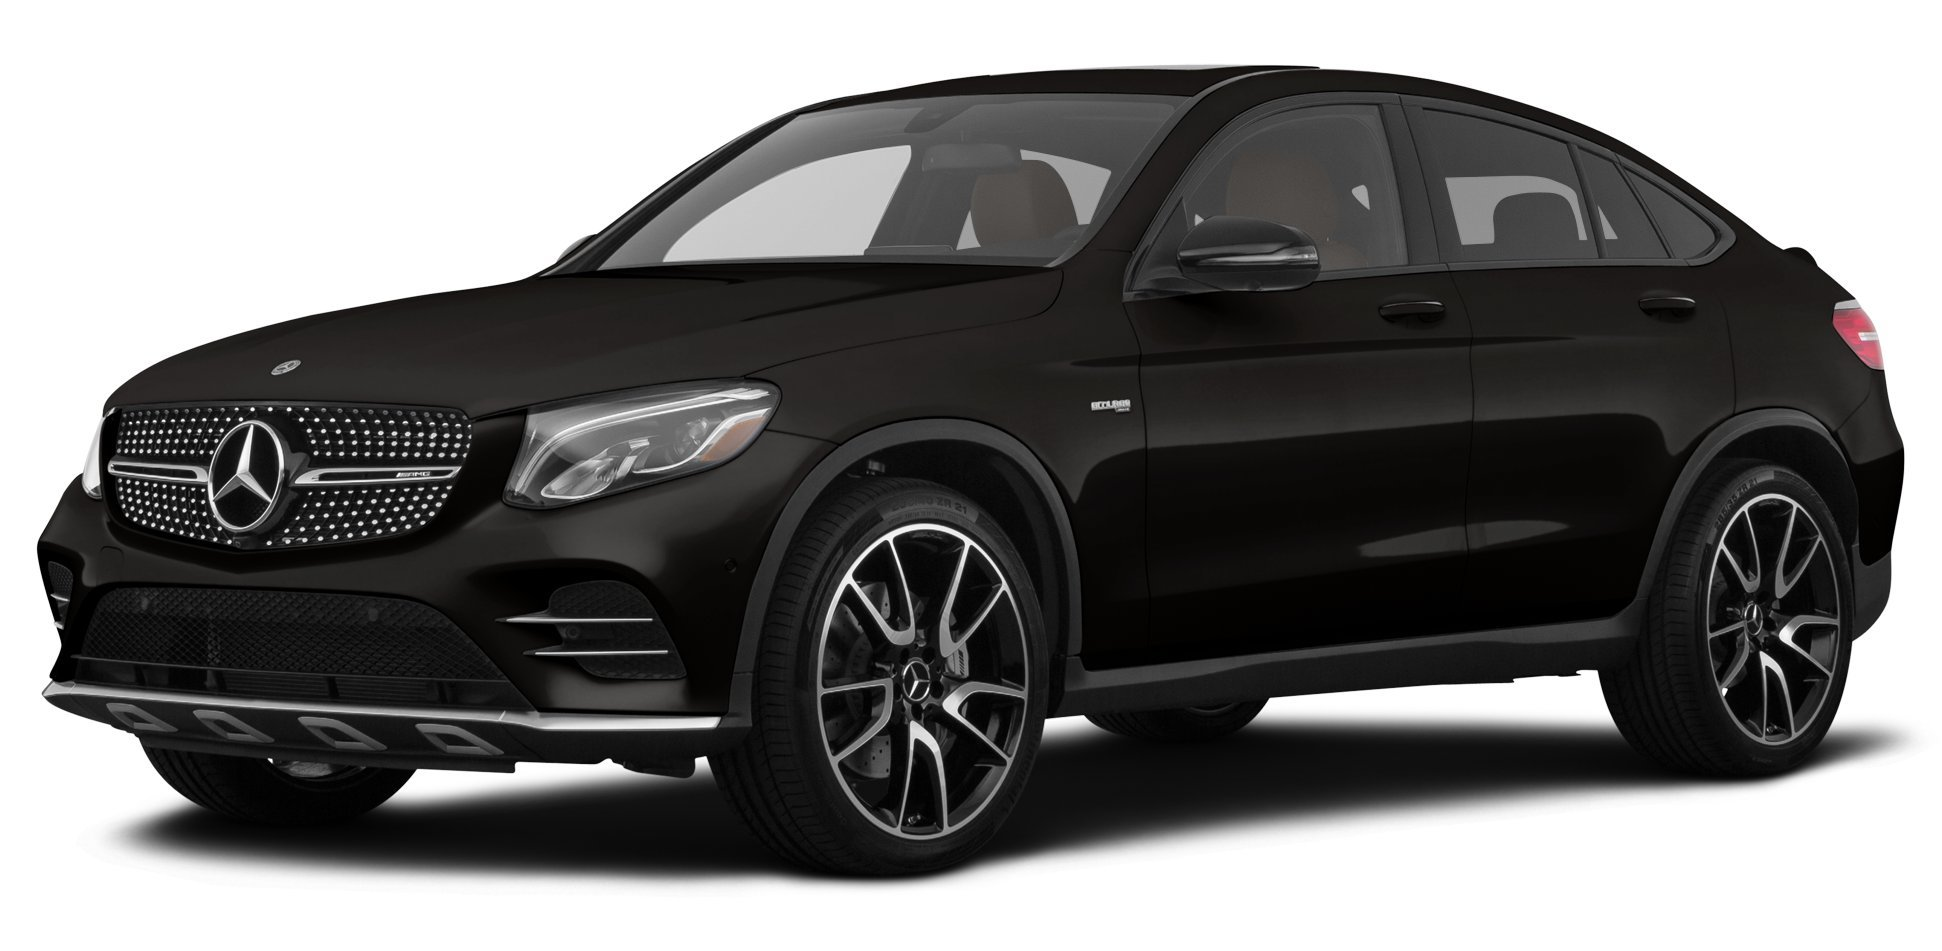 2017 mercedes benz glc300 reviews images and for Mercedes benz glc 300 coupe